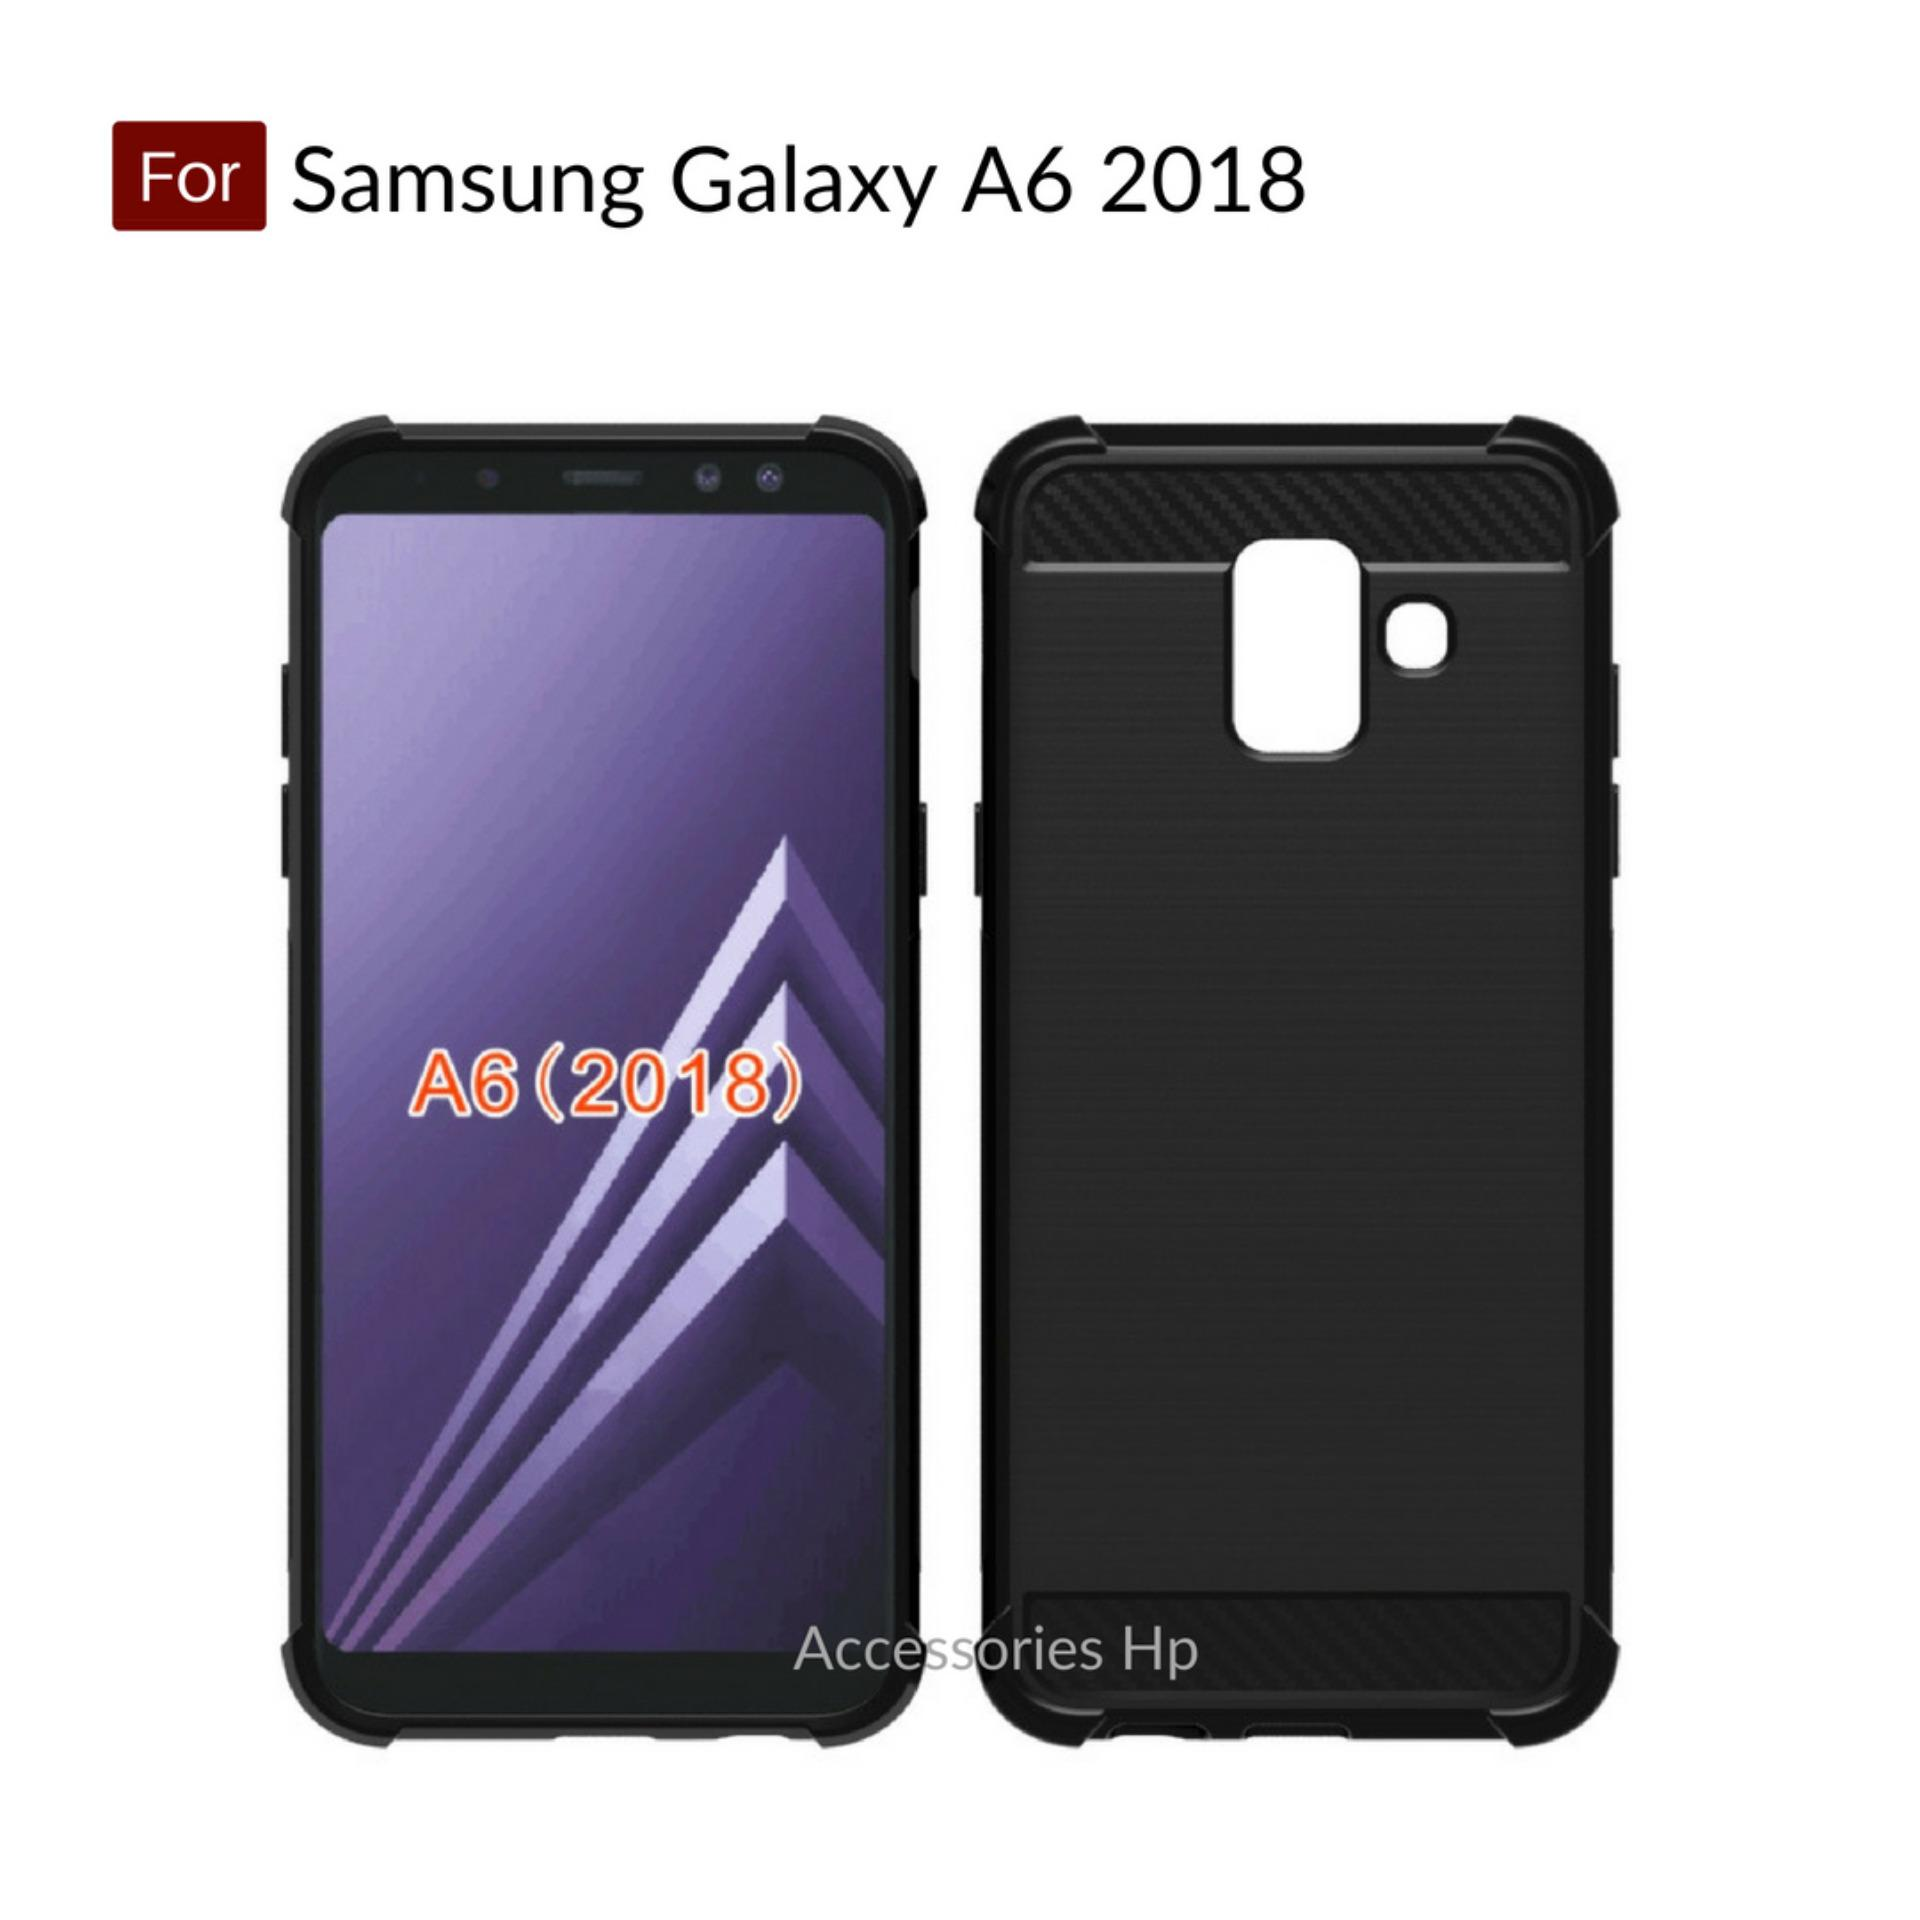 Accessories Hp Brushed Carbon Crack Case Samsung Galaxy A6 2018 ( 5.6 inch ) - Black